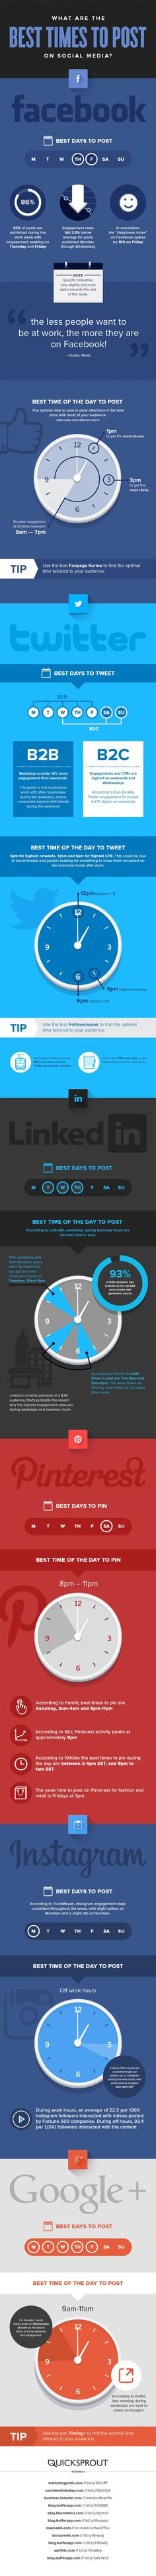 WHAT ARE THE BEST TIMES TO POST ON #SOCIAL #MEDIA? – #INFOGRAPHIC